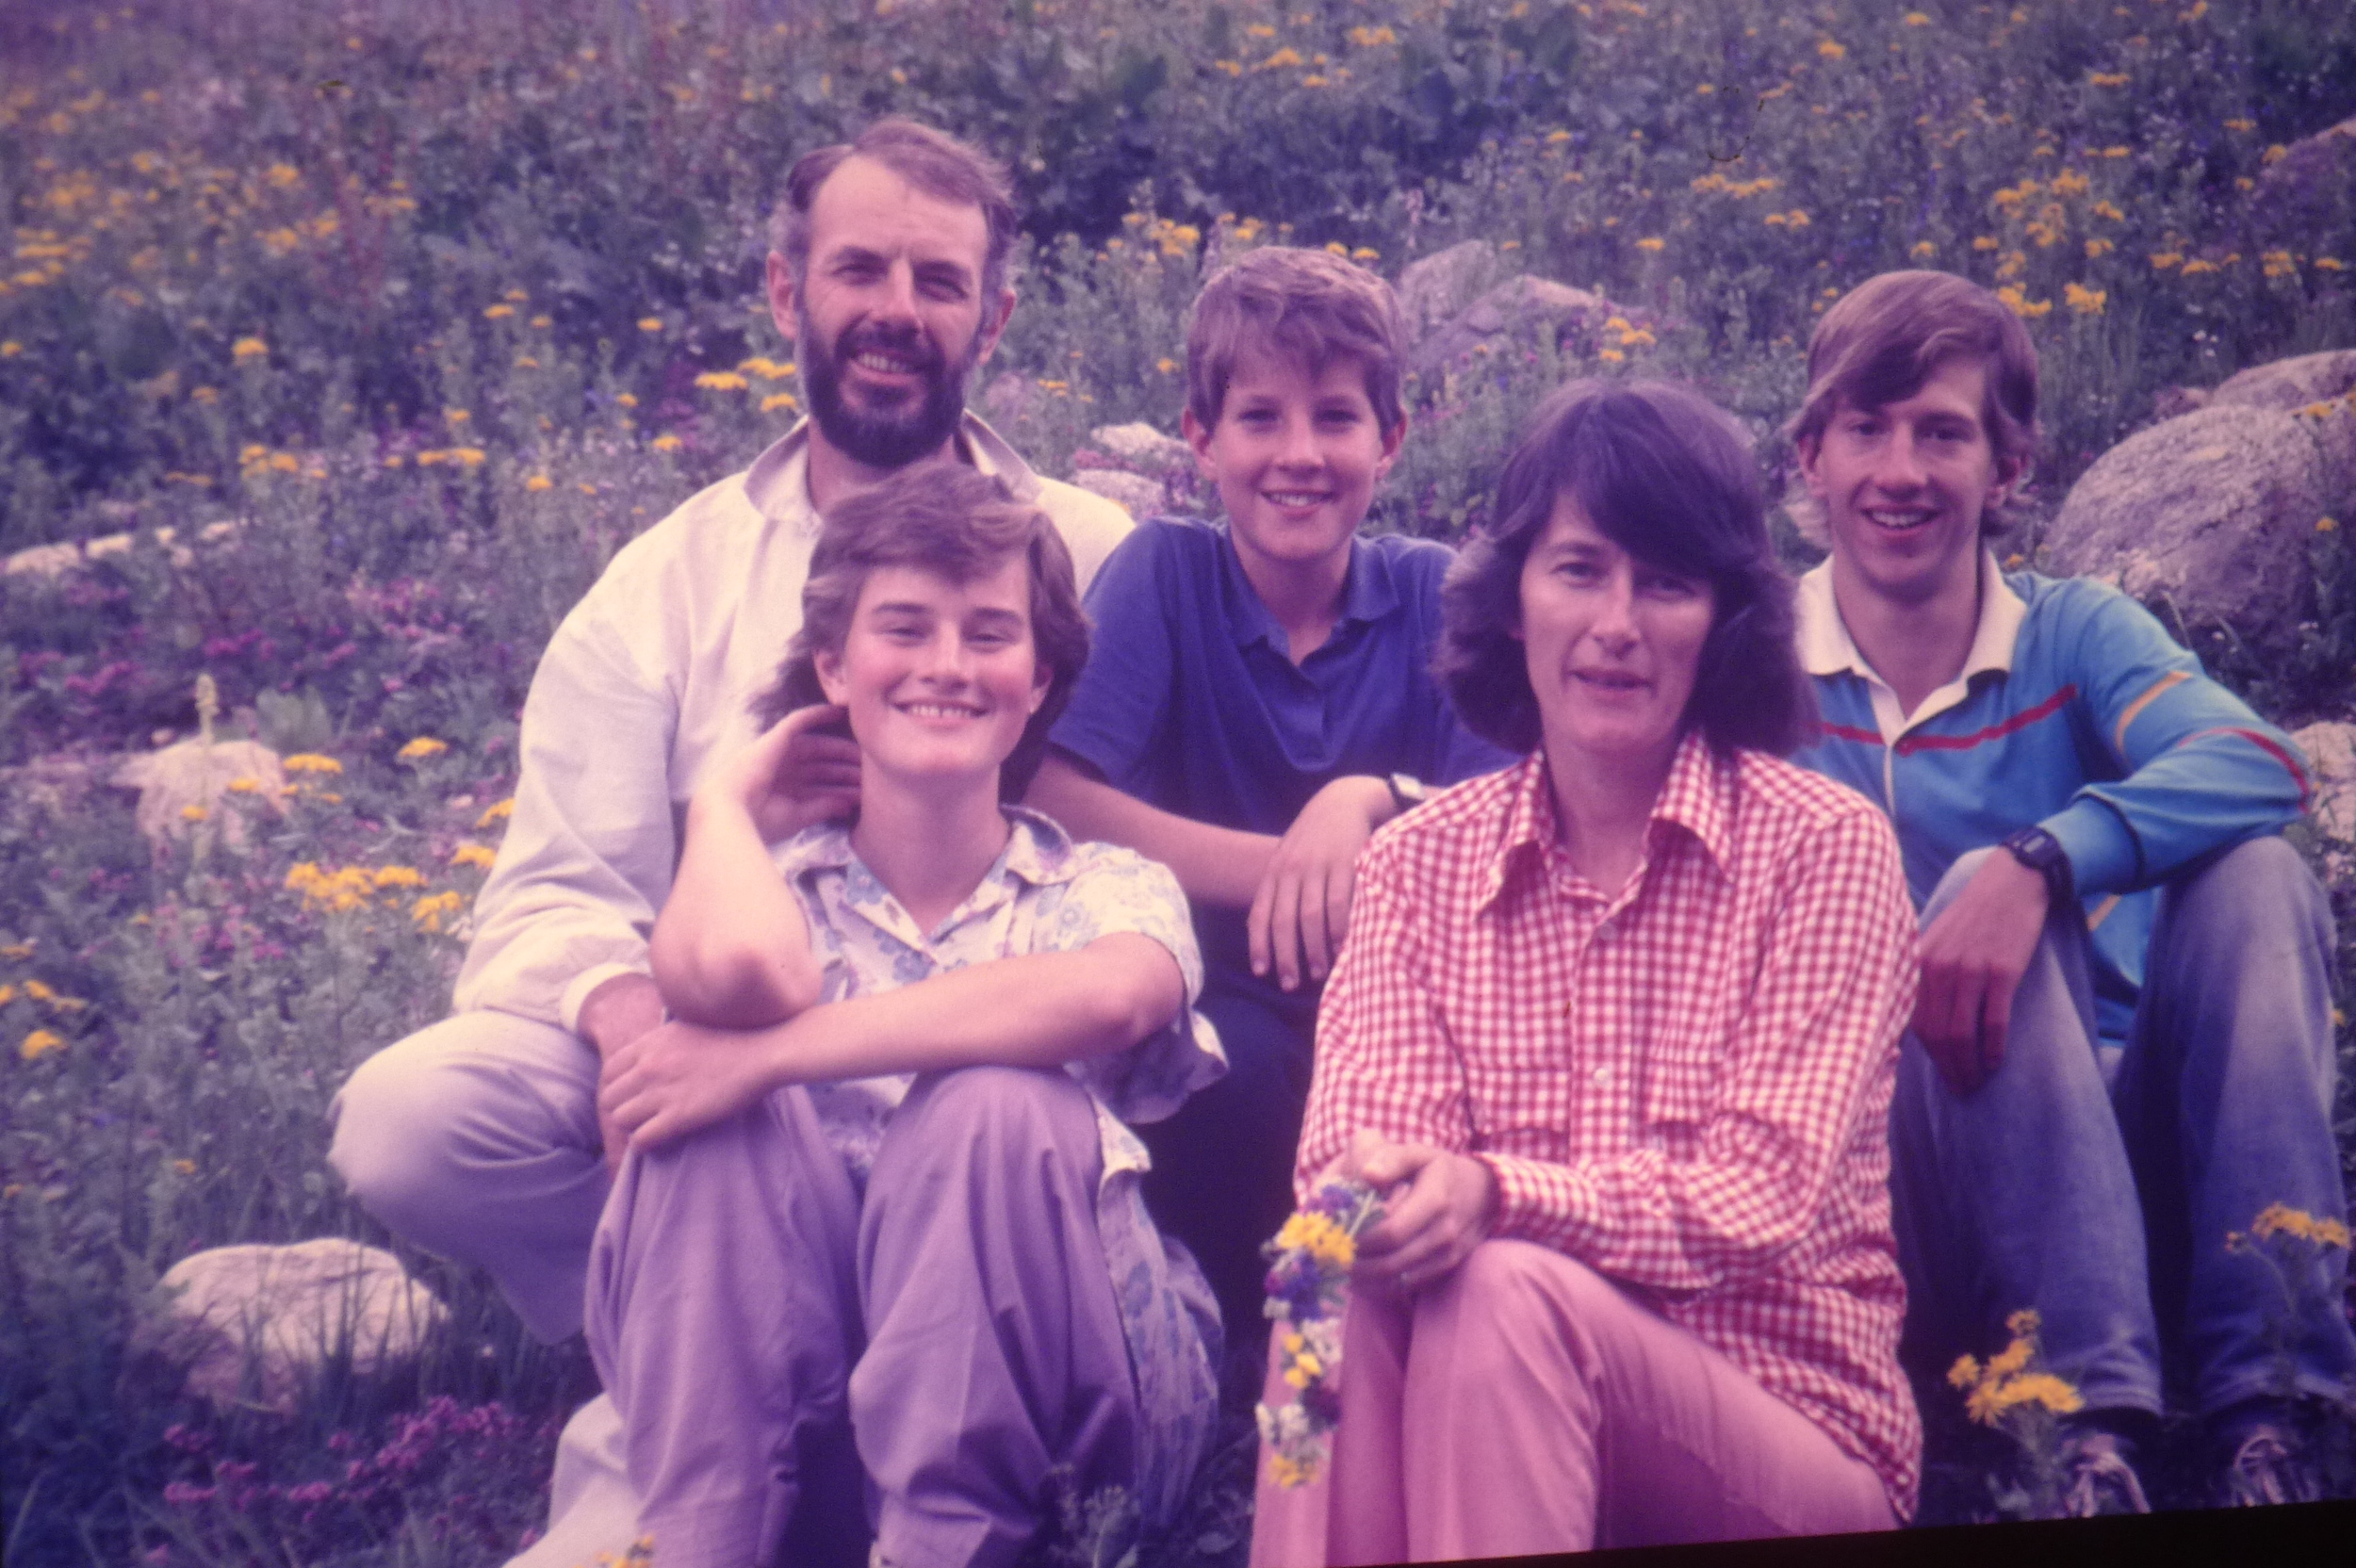 Here's my Extremely Dull family on a mountain outing in northern Pakistan back when I was 13.